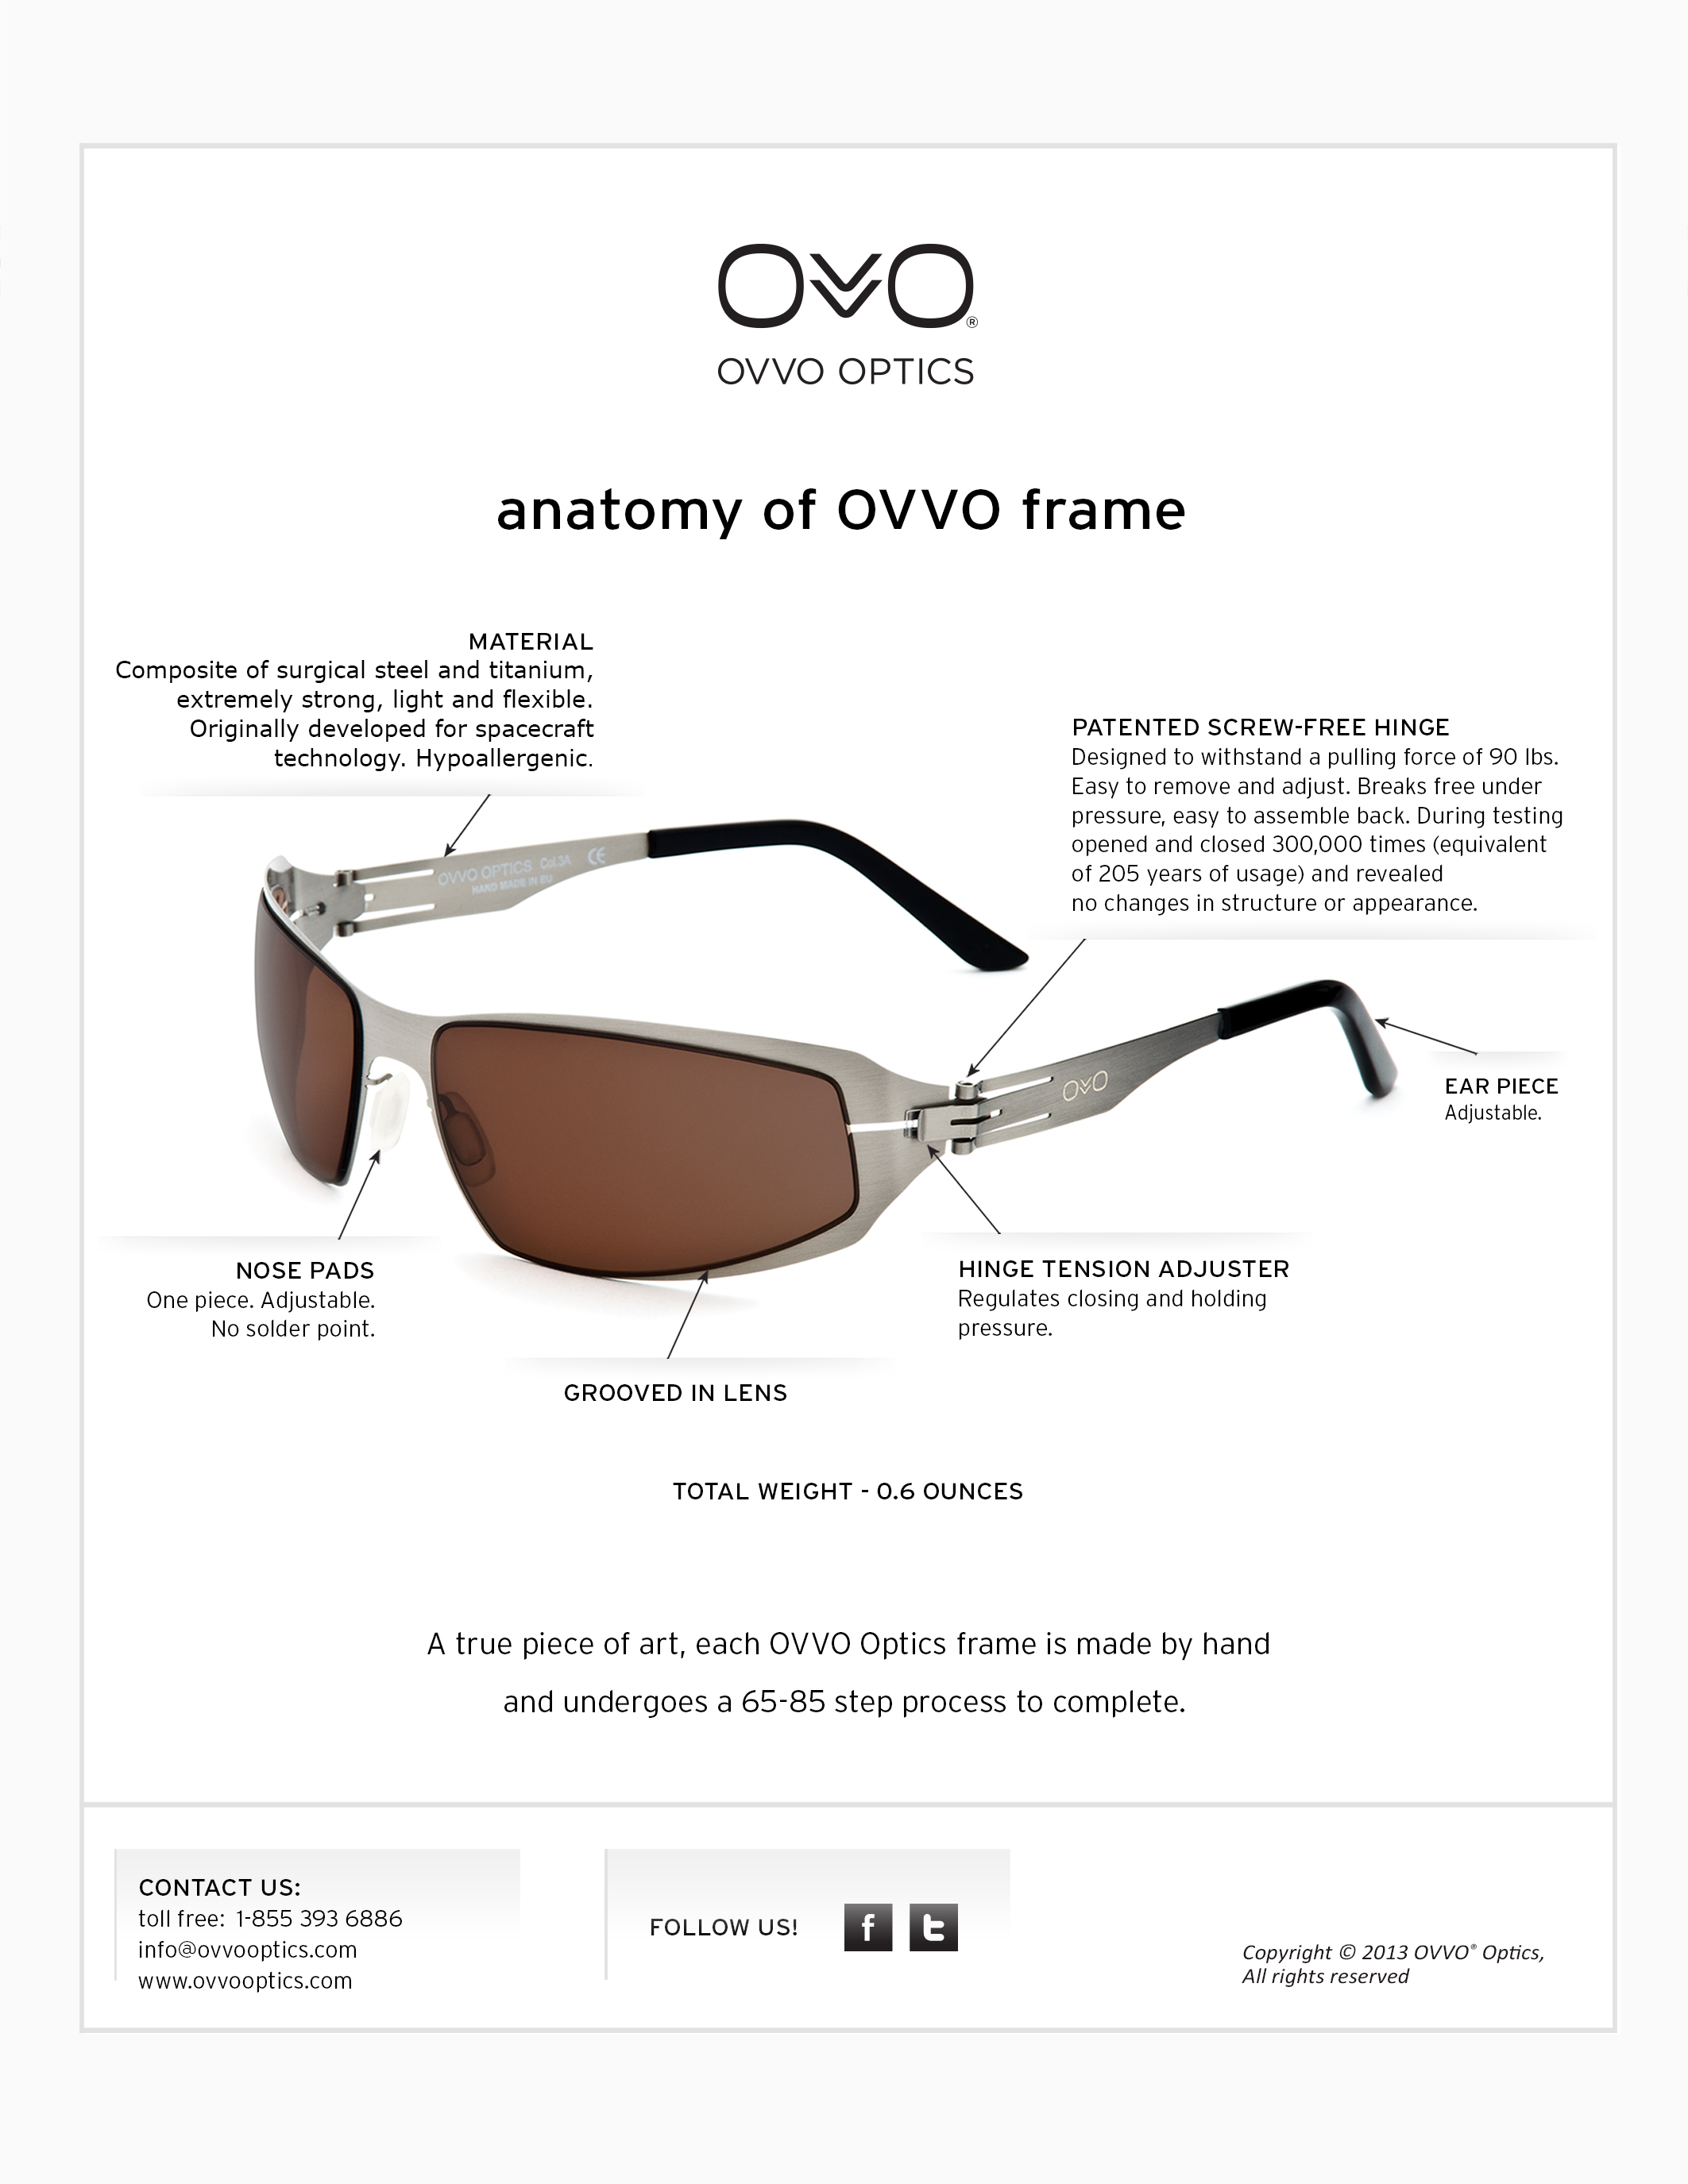 Anatomy of an OVVO frame